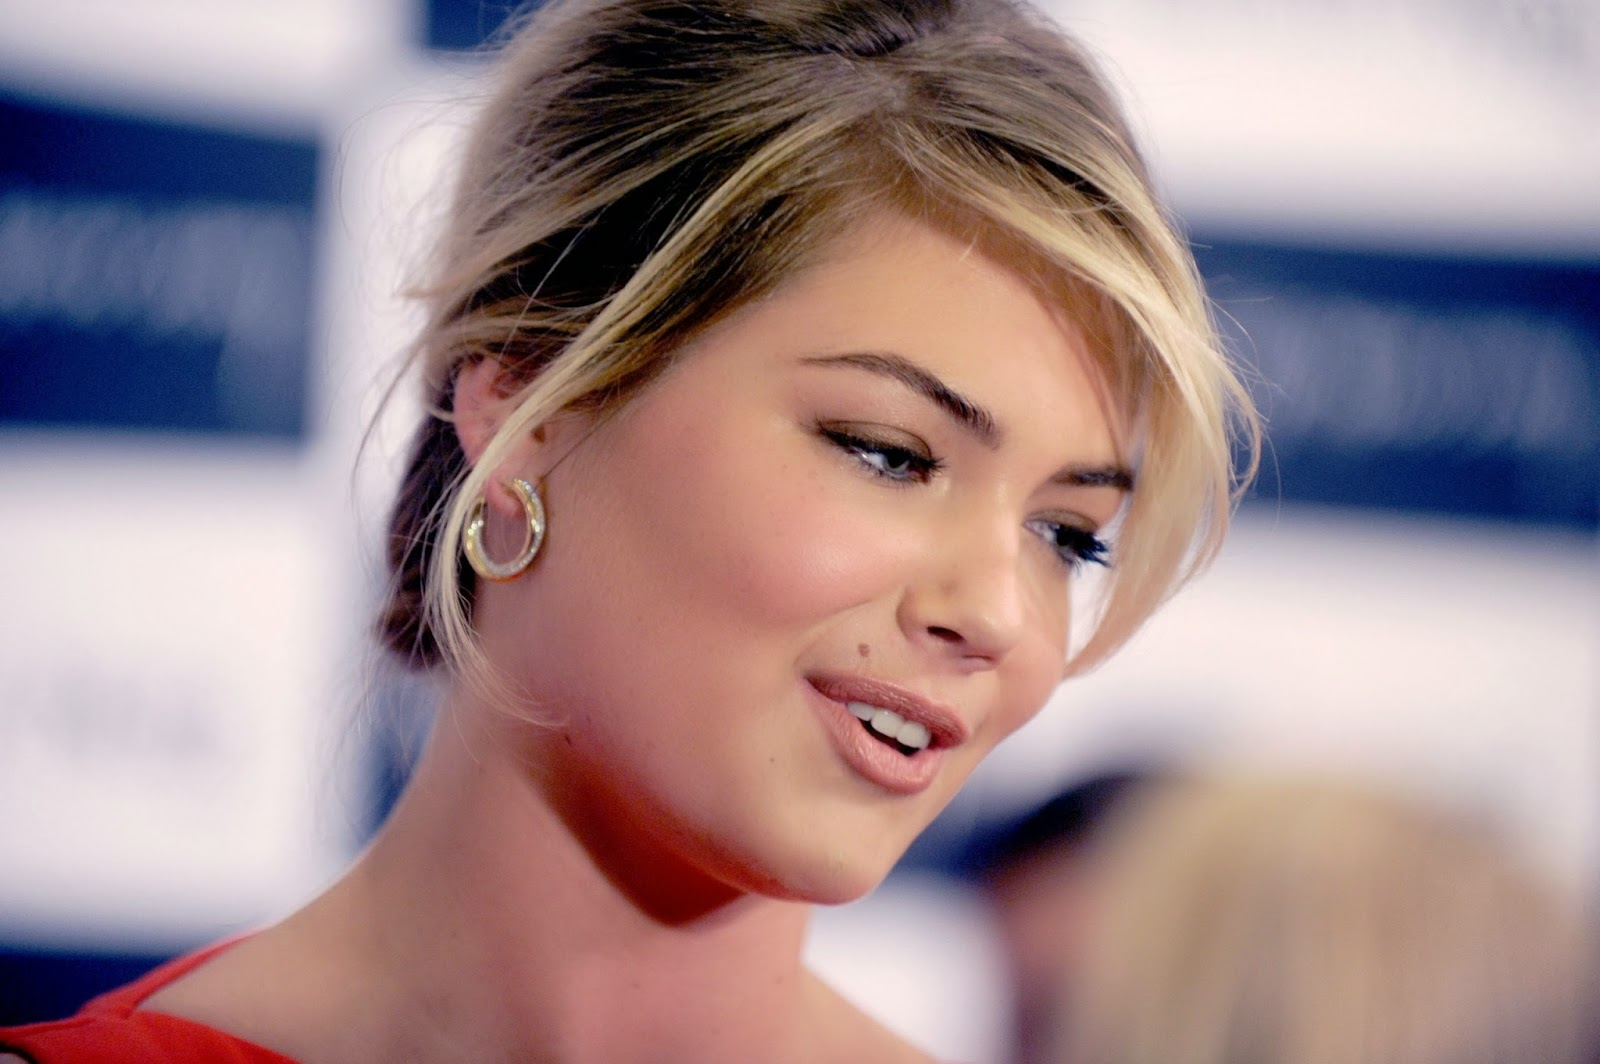 kate upton wallpaper download - photo #16